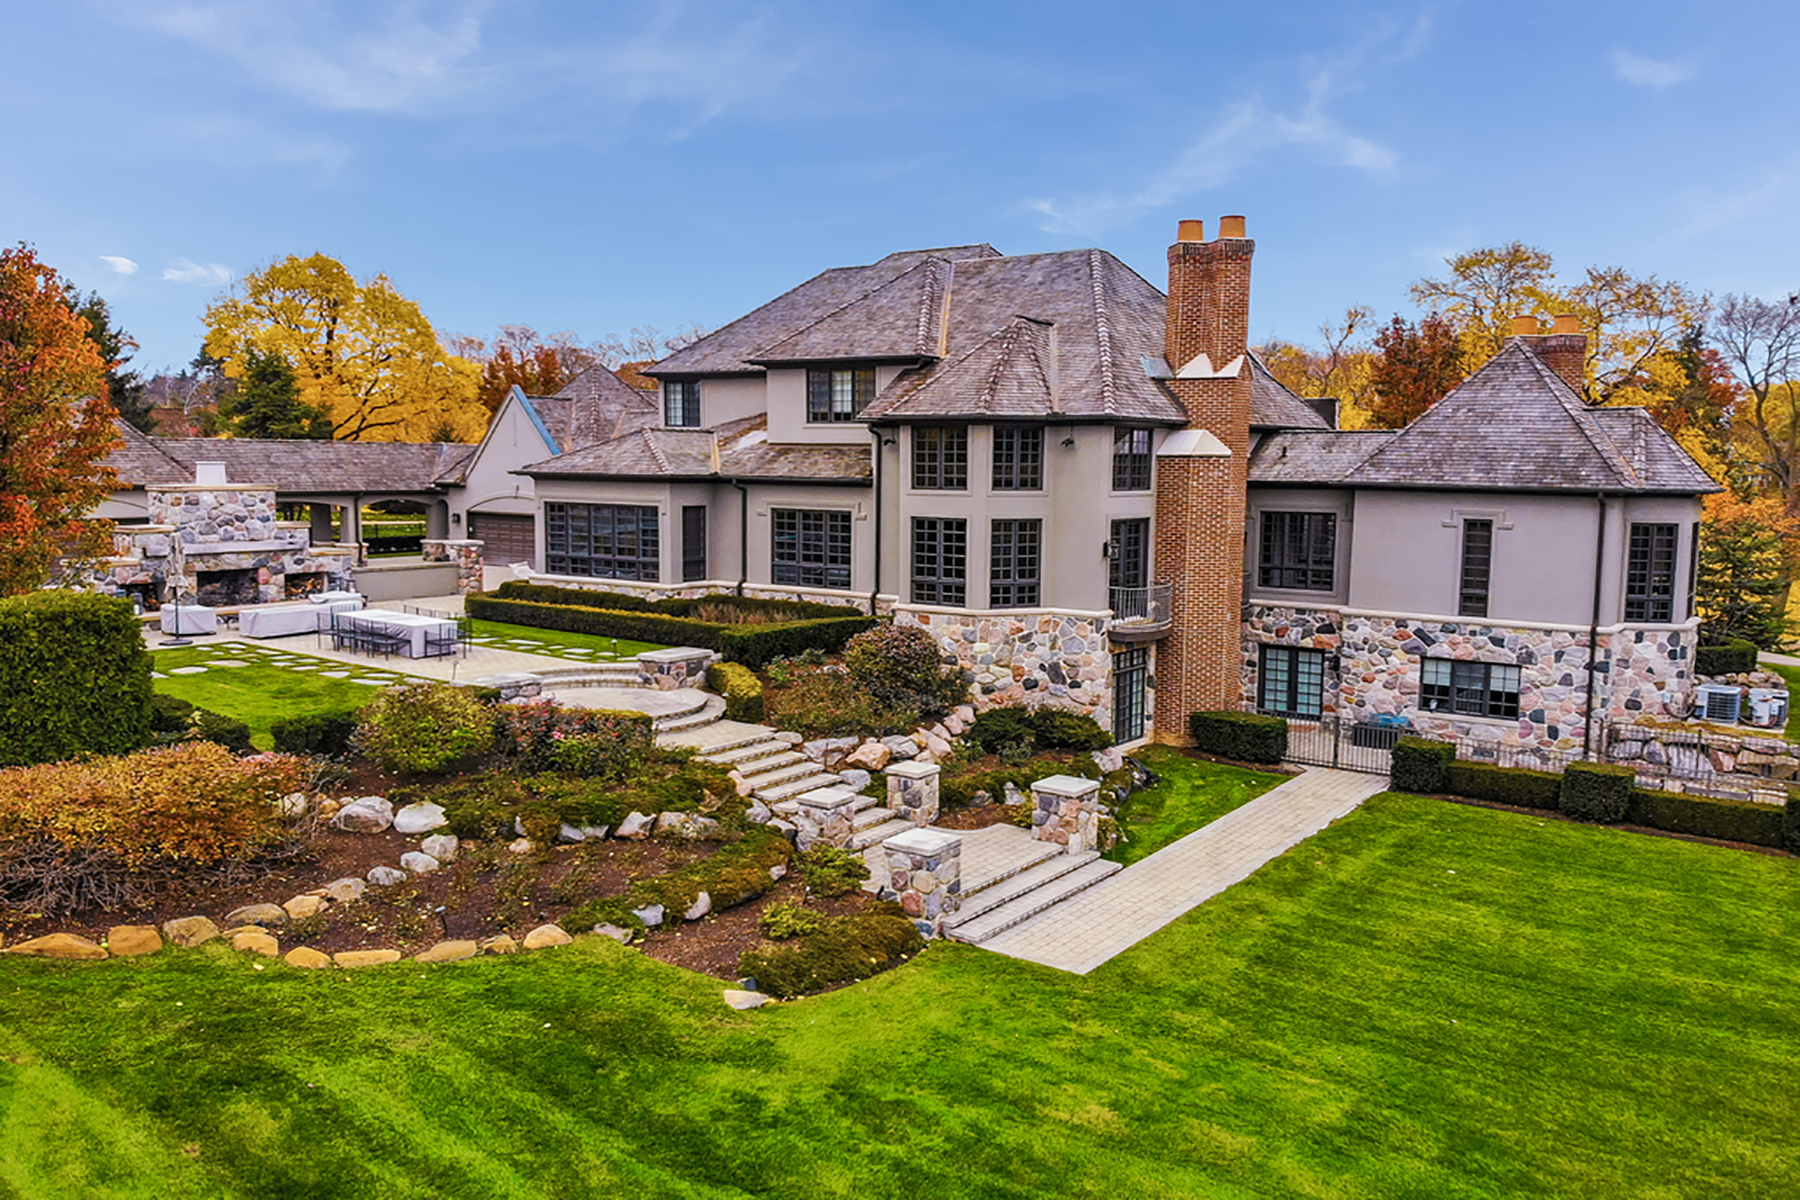 Single Family Homes for Sale at Bloomfield Hills 1161 Pembroke Drive Bloomfield Hills, Michigan 48304 United States